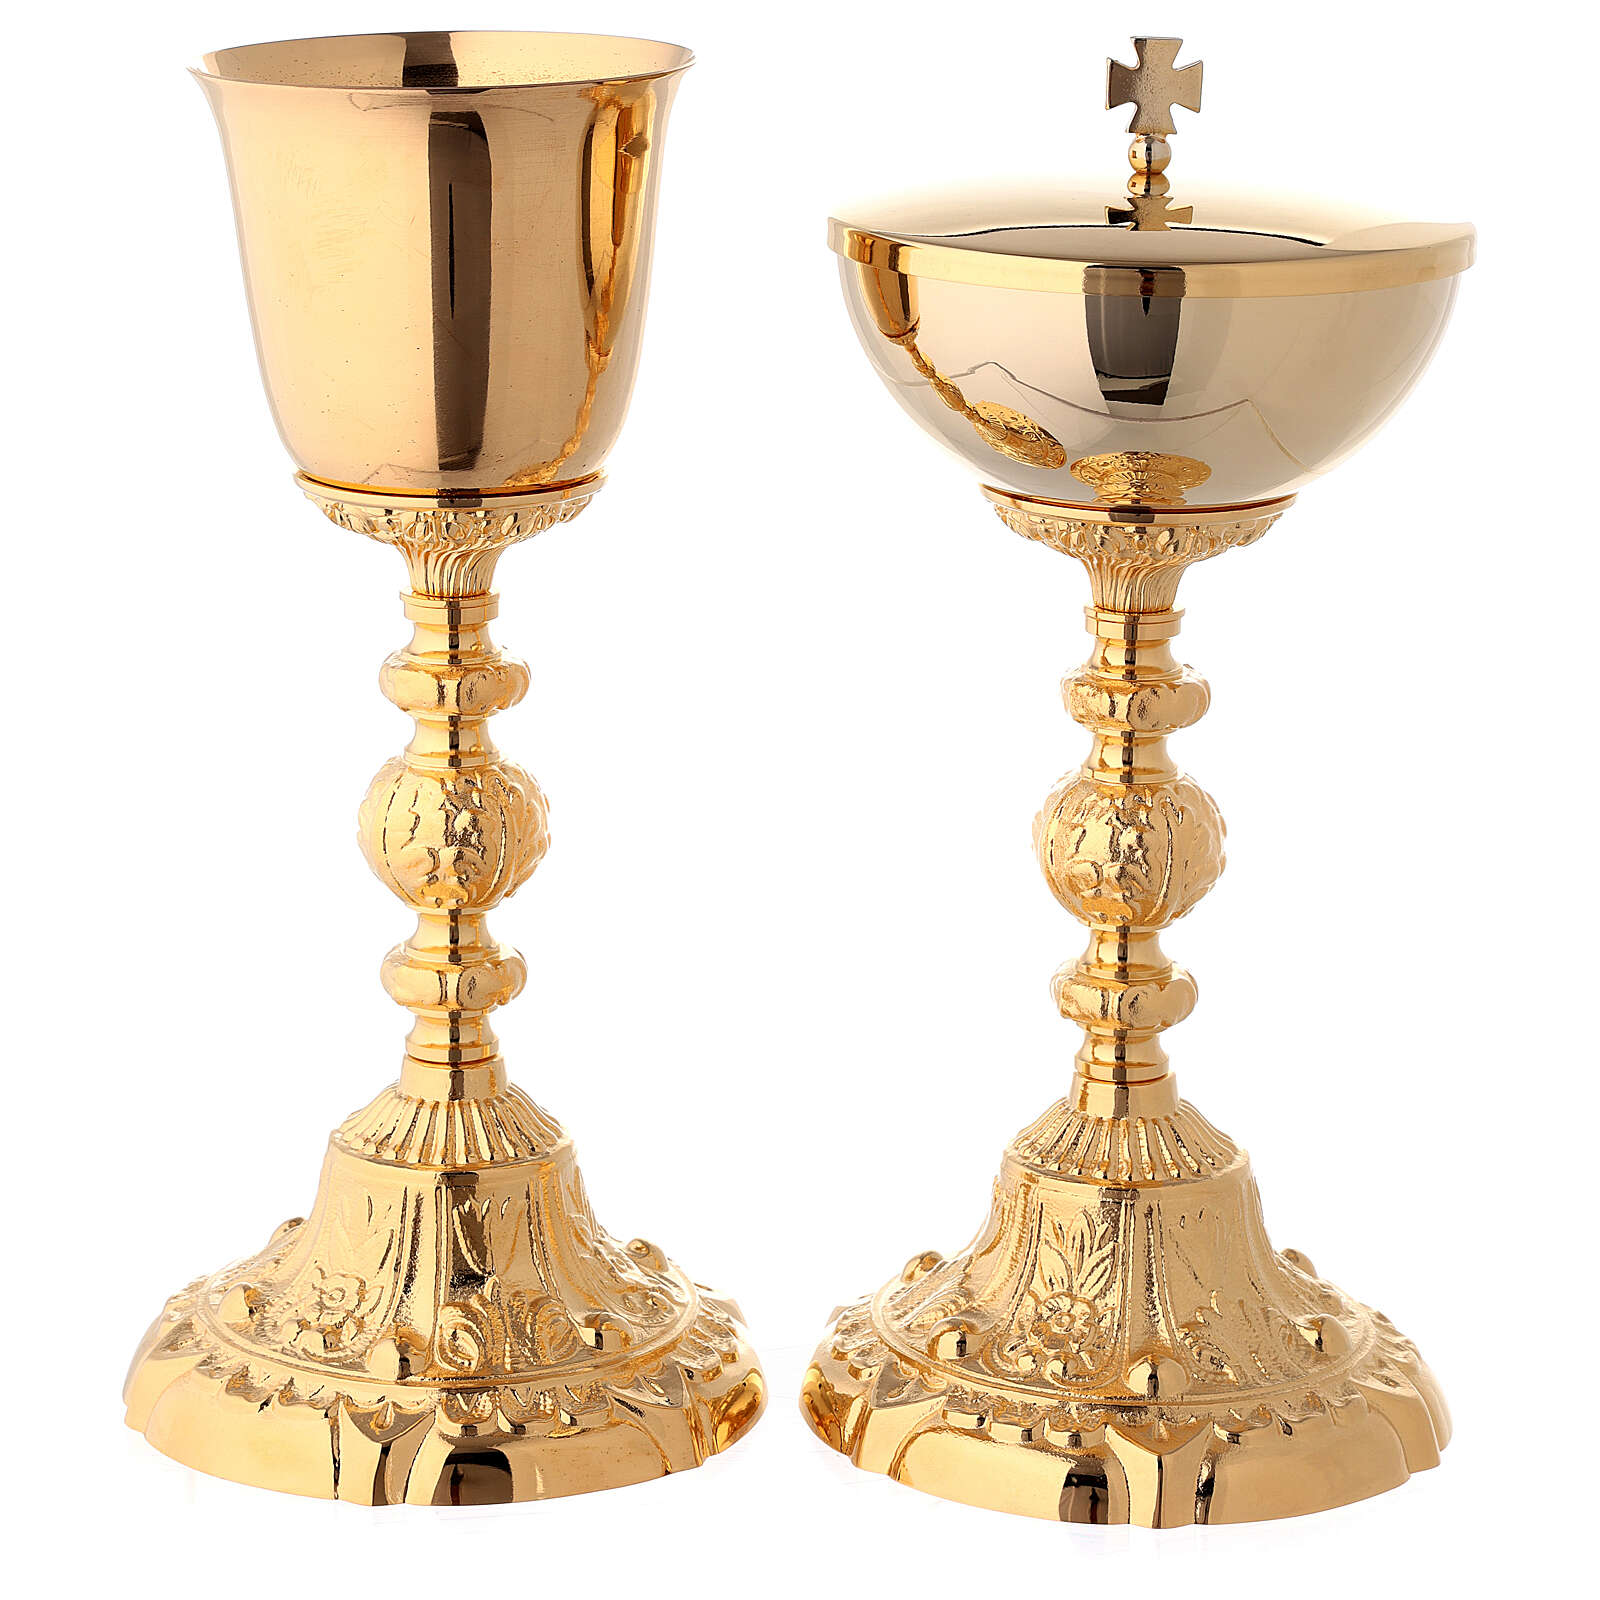 Chalice and ciborium with baroque base in 24-karat gold plated brass 4